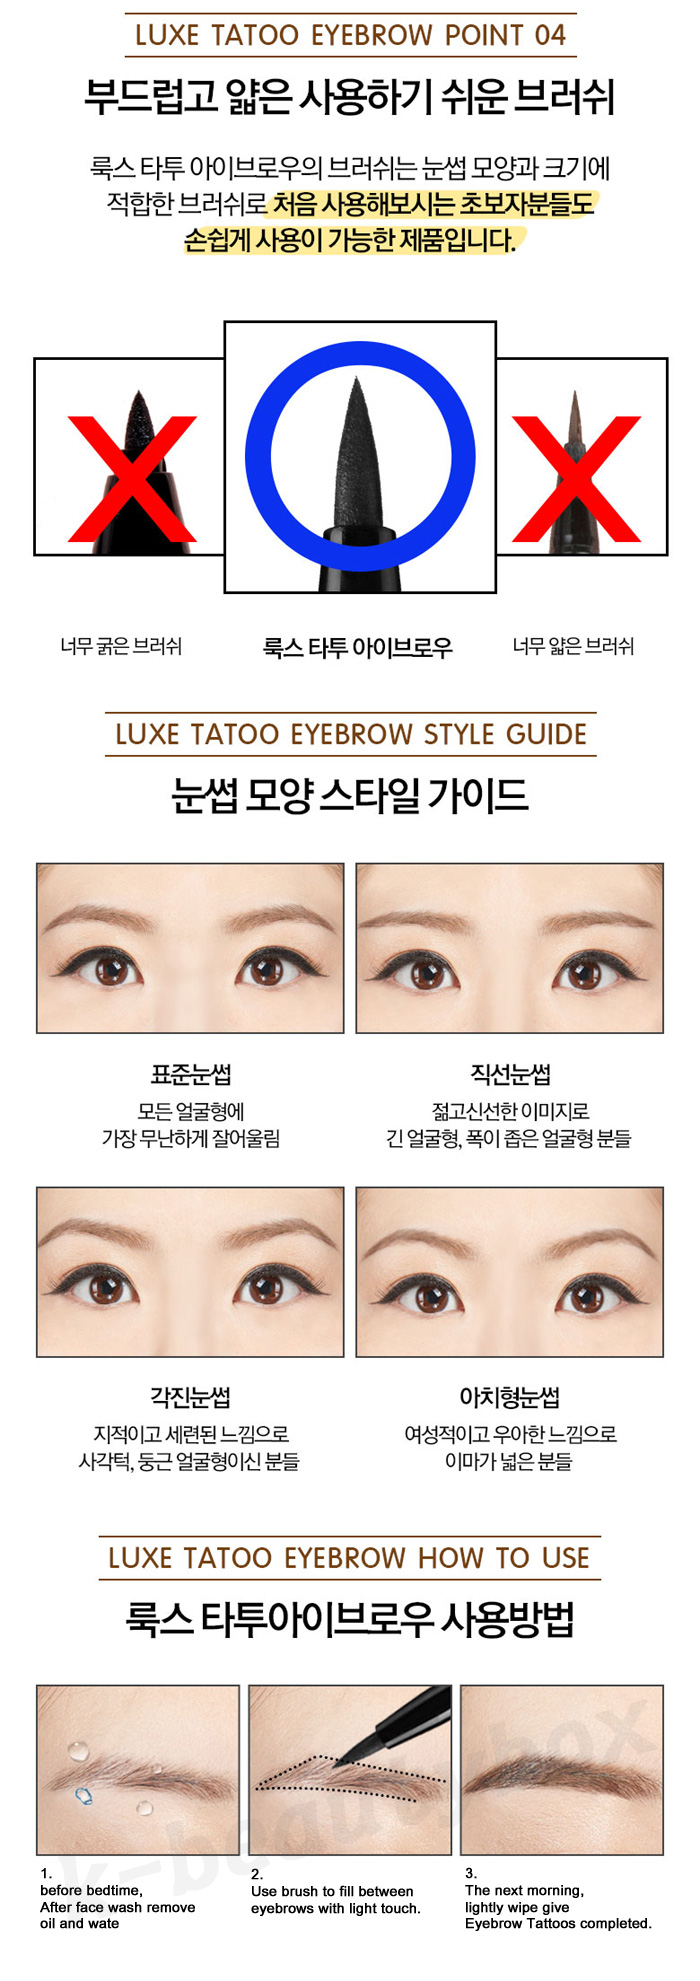 New Rire Luxe Tatoo Eyebrow 2color Lasts Up To 7 Days Long Lasting